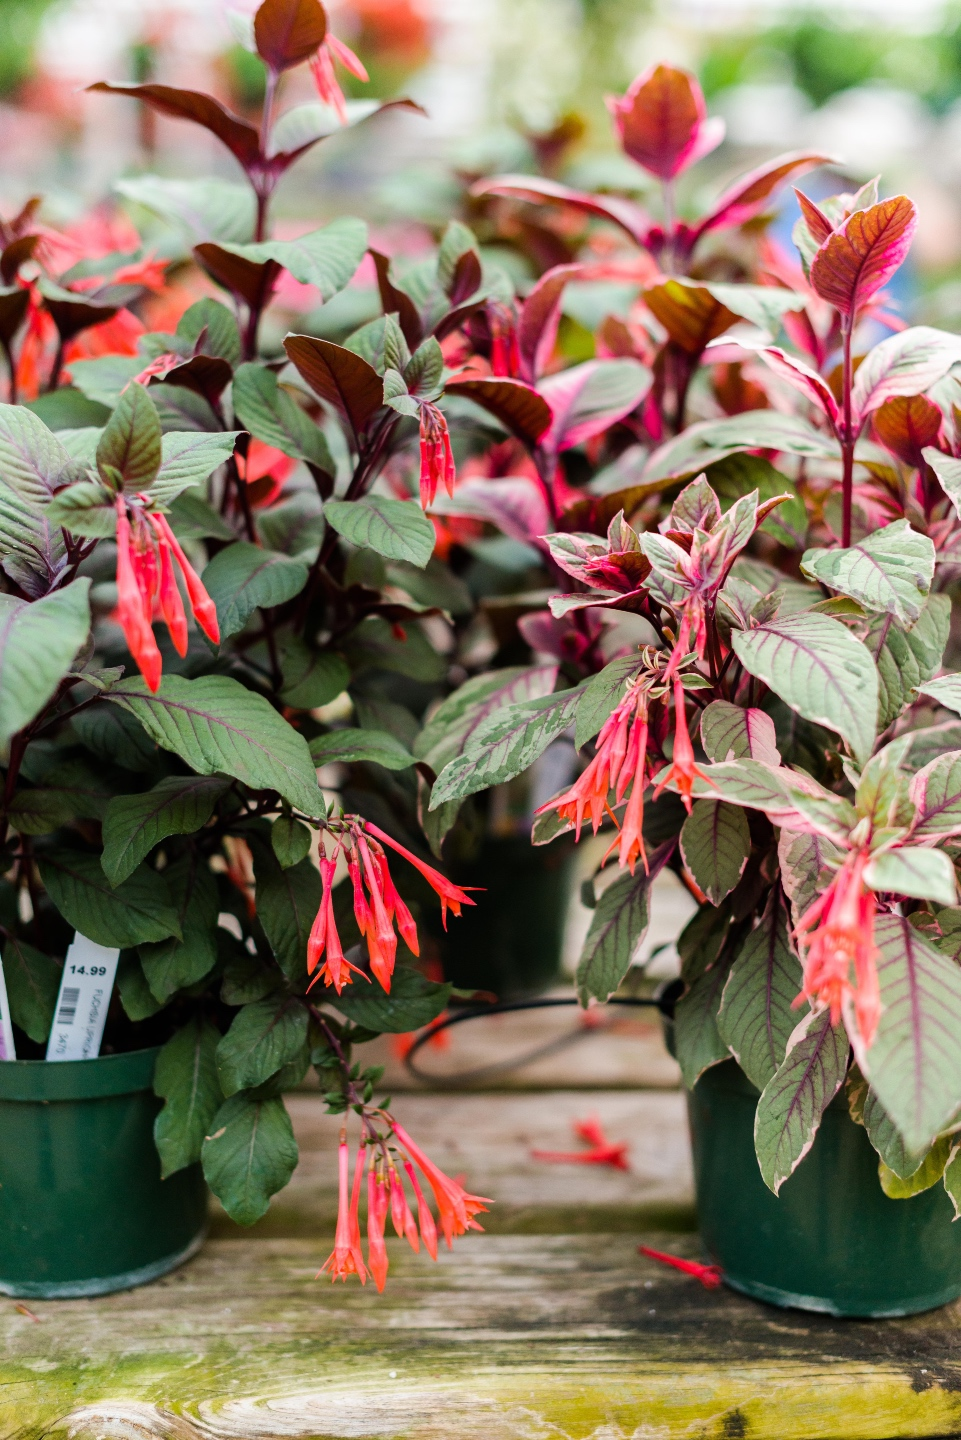 5 Spring Planting Tips with Fairview Garden Center - I'm Fixin' To - @imfixintoblog |Best Plants to Plant in Spring by popular NC lifestyle blog: image of a red floral plant.